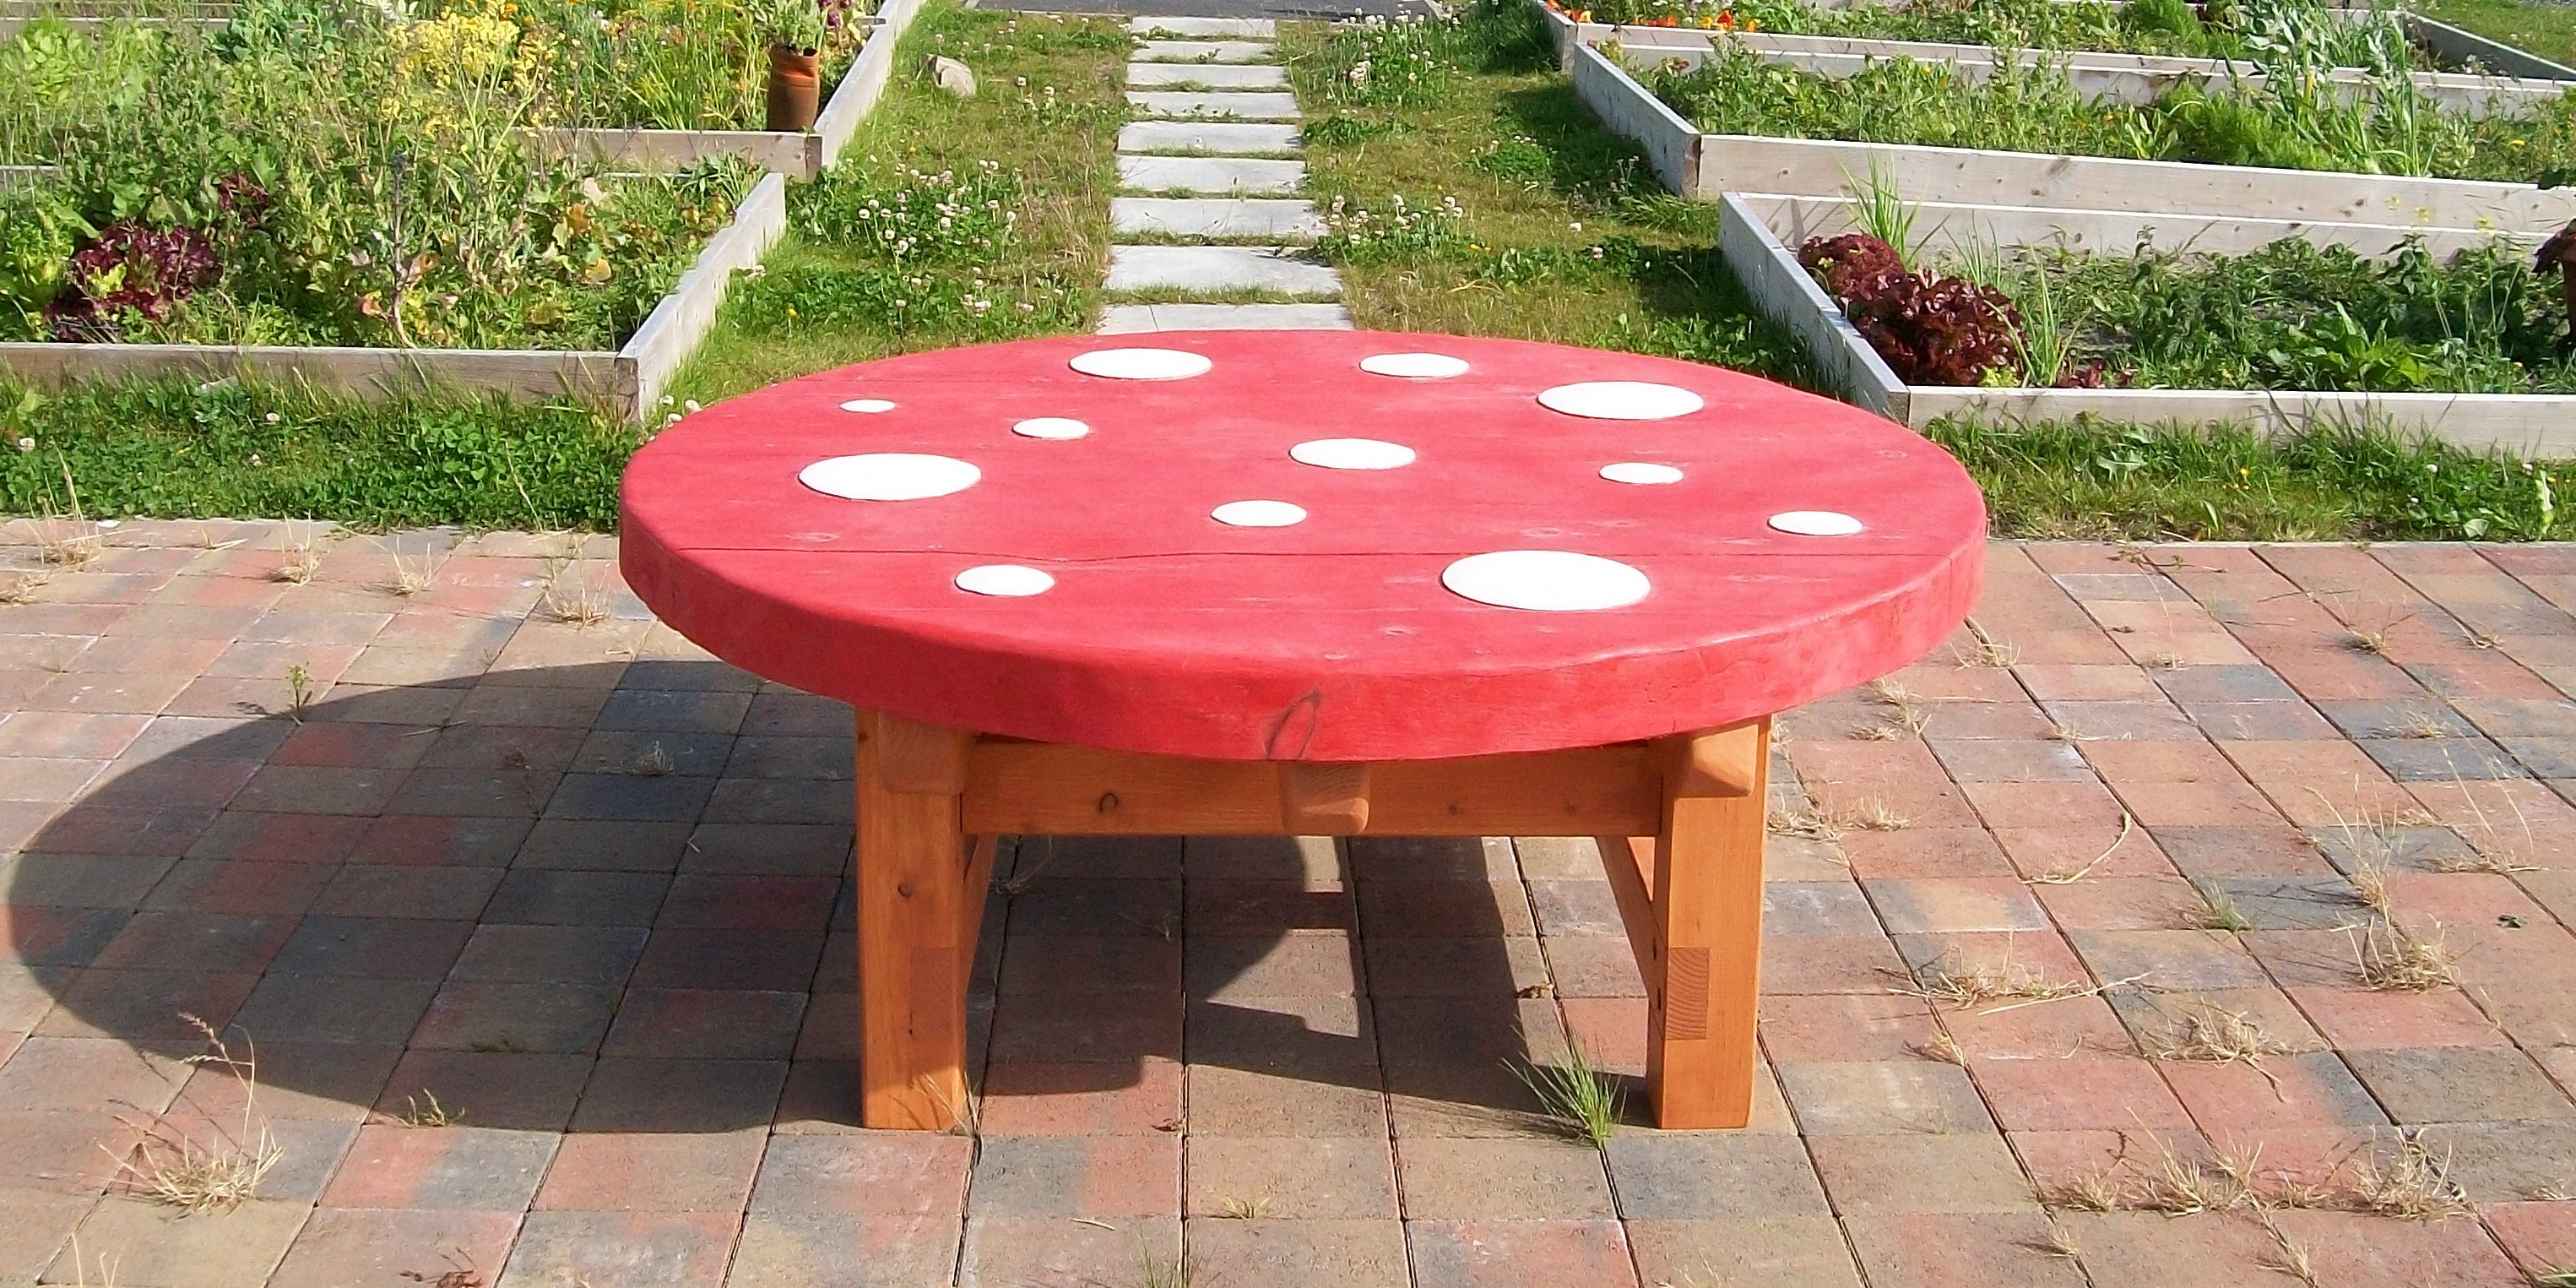 toadstool table, mushroom table, gardens , friendship table, garden furniture, sculpture, school playground, durable, outdoor furniture, bespoke, custom made,